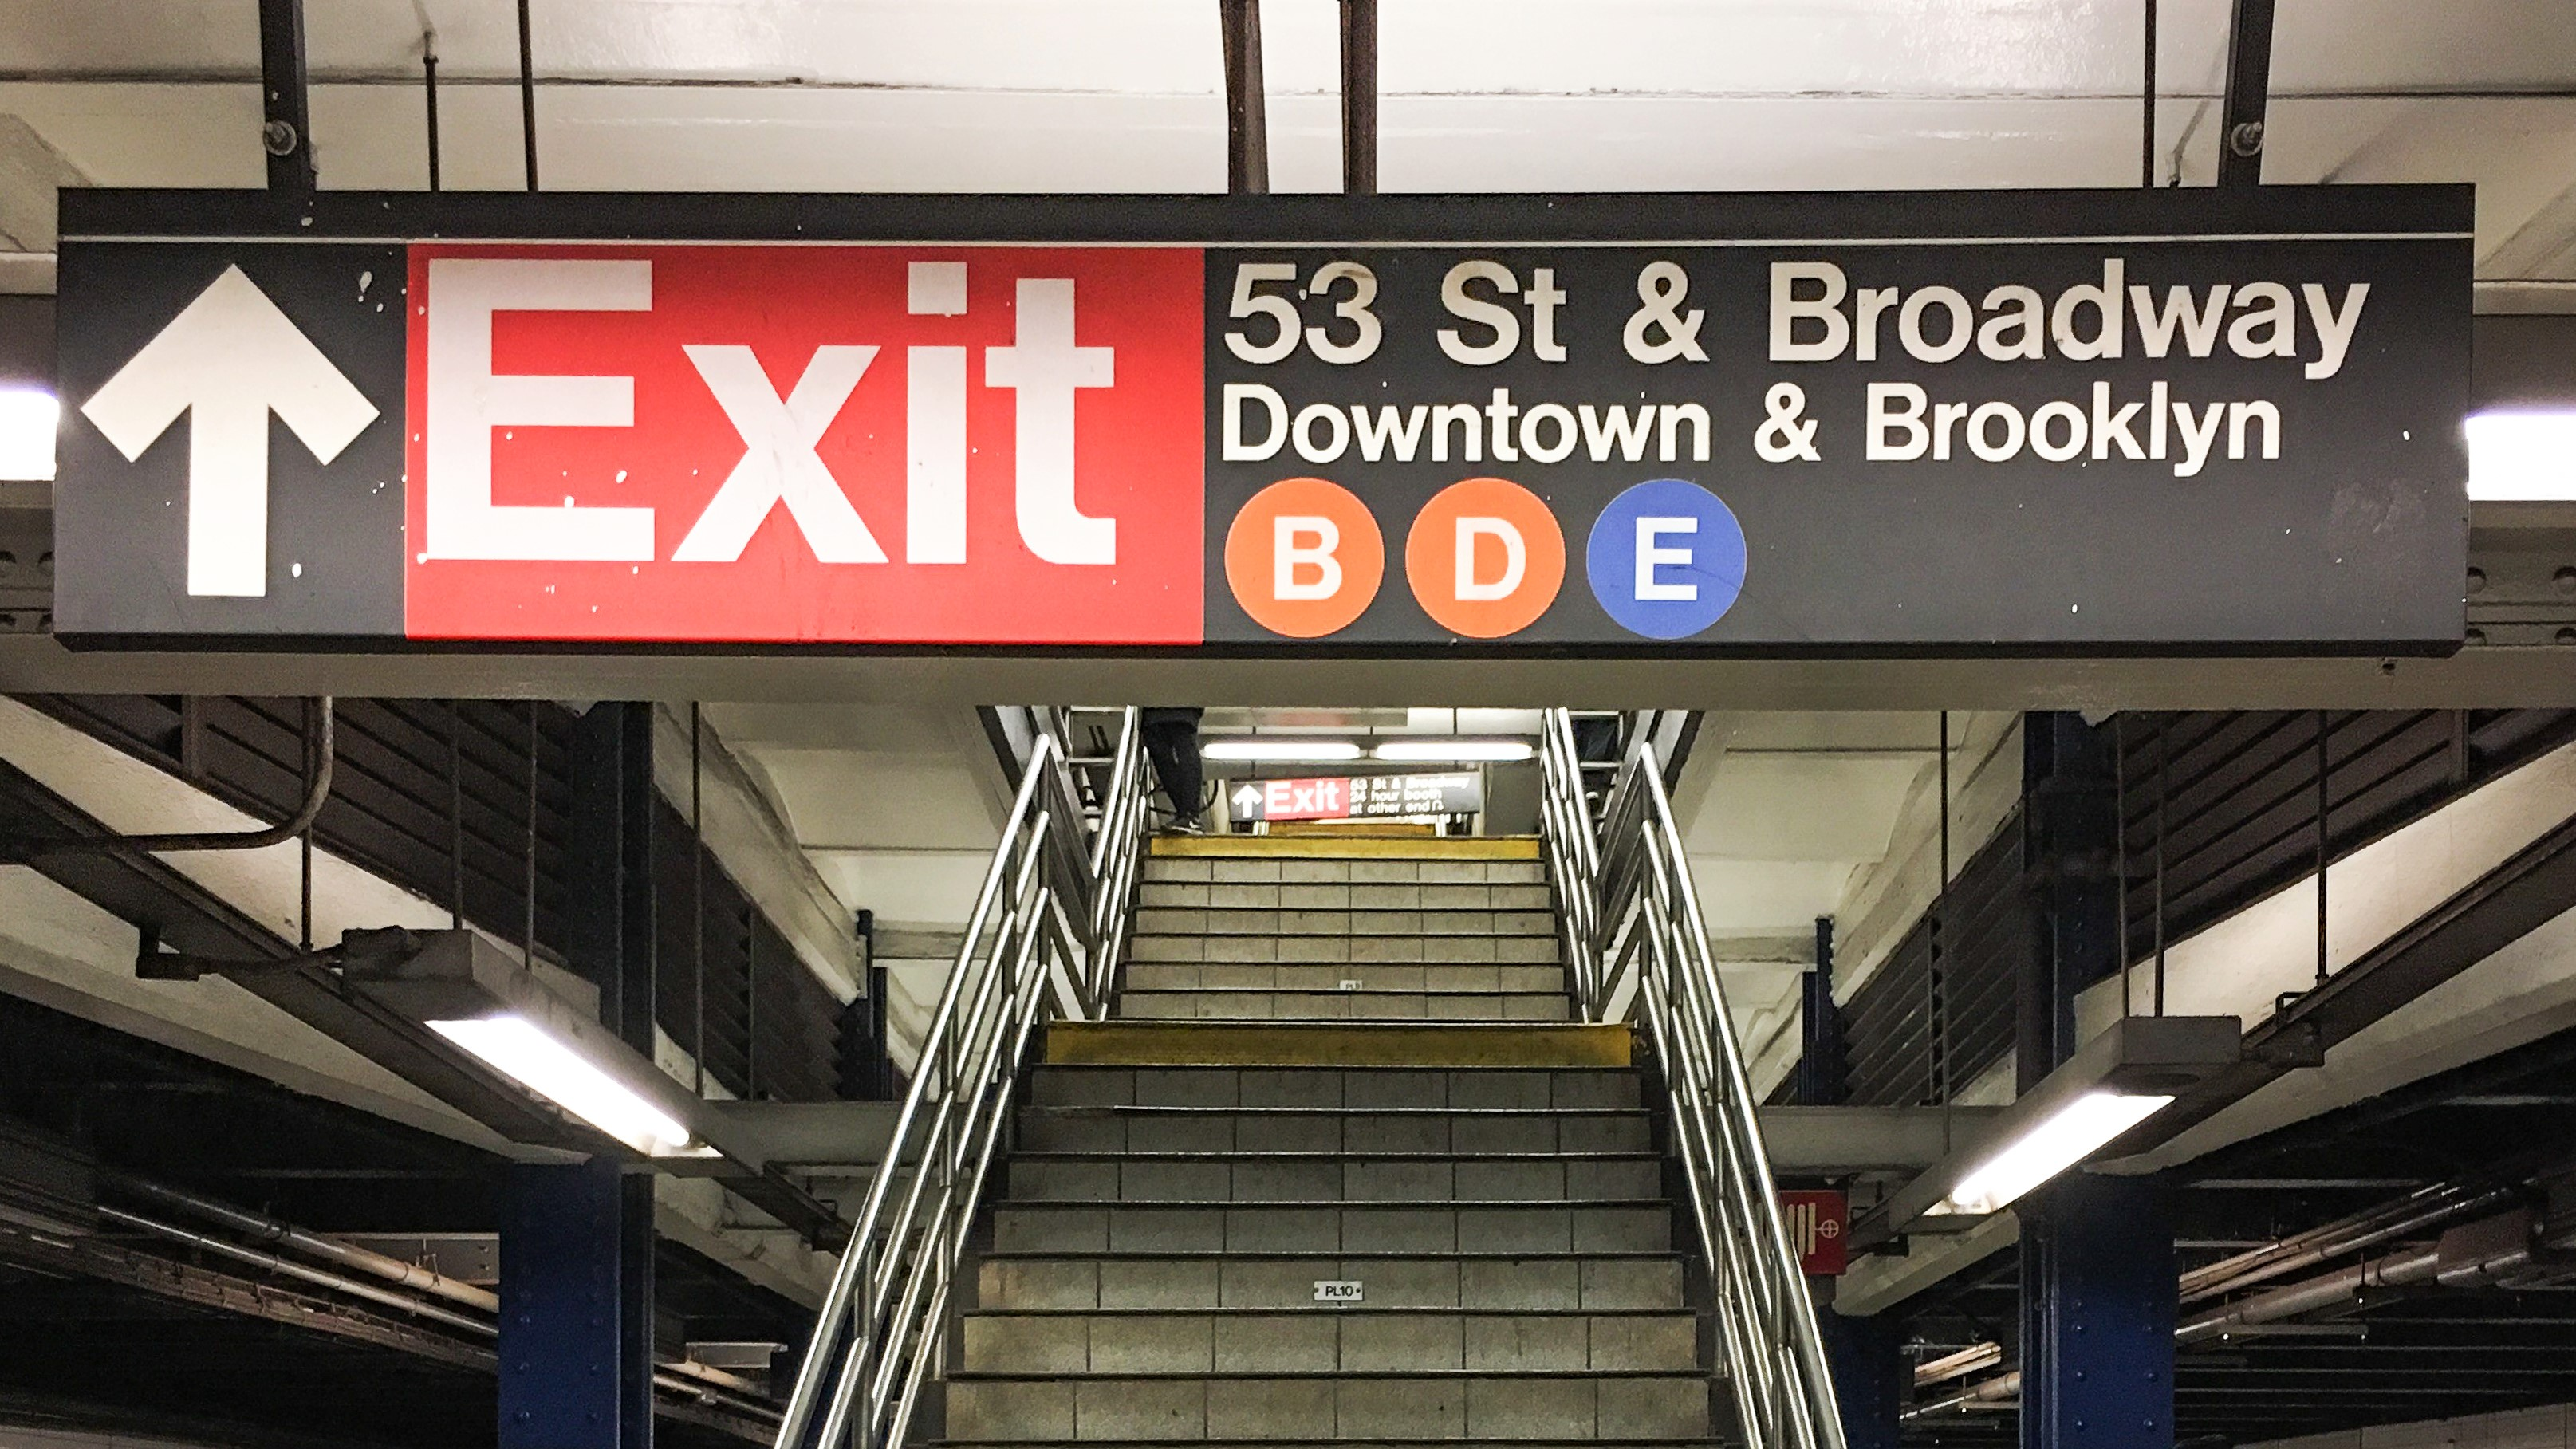 Young Mother Holding Her Baby Daughter Falls to Her Death Down New York Subway Station Stairs